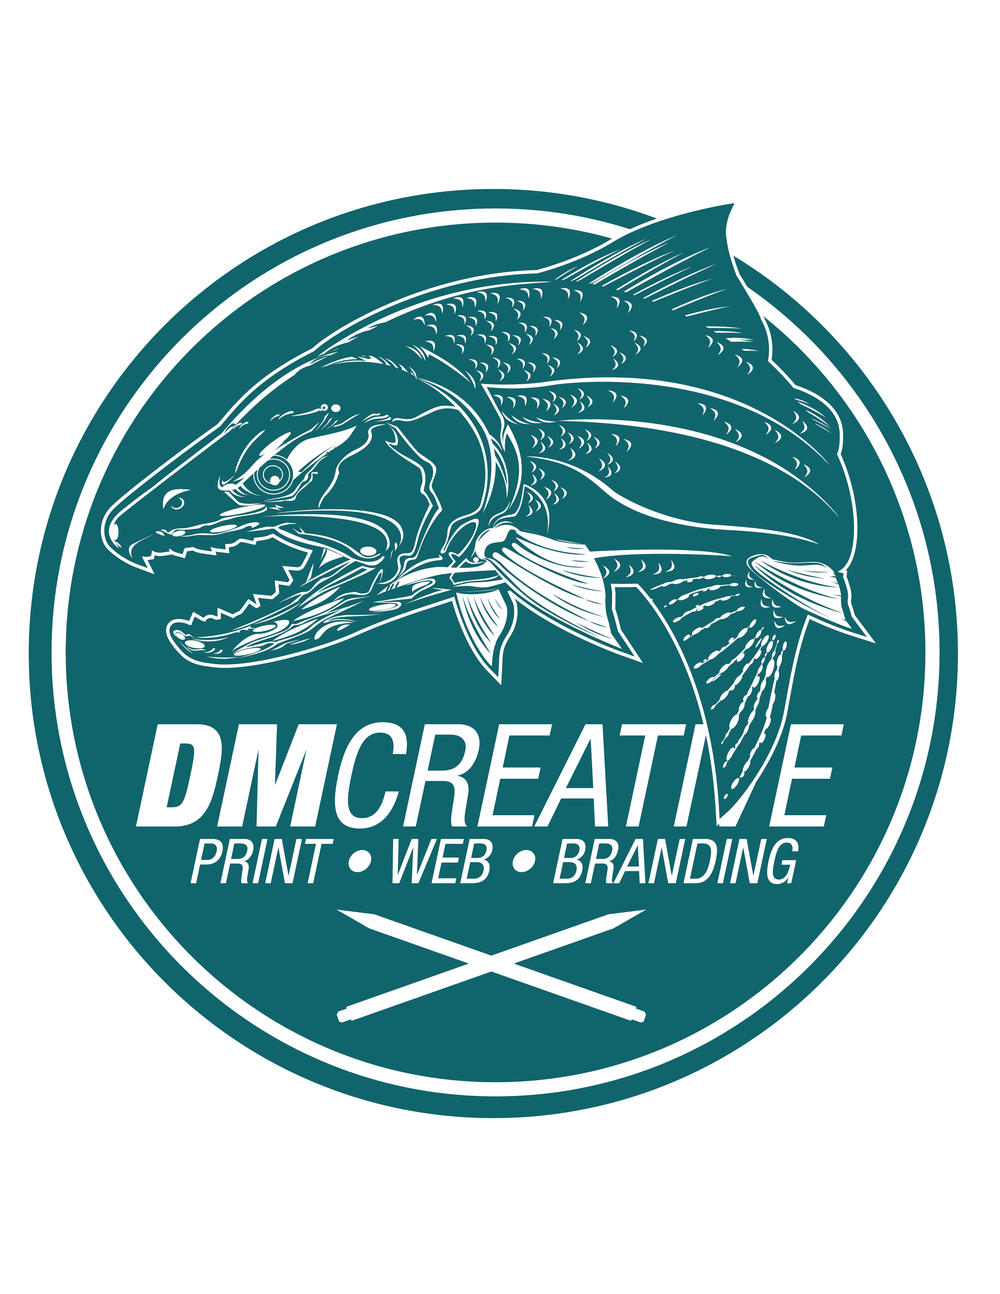 DMCREATIVE-LOGO-01.jpg